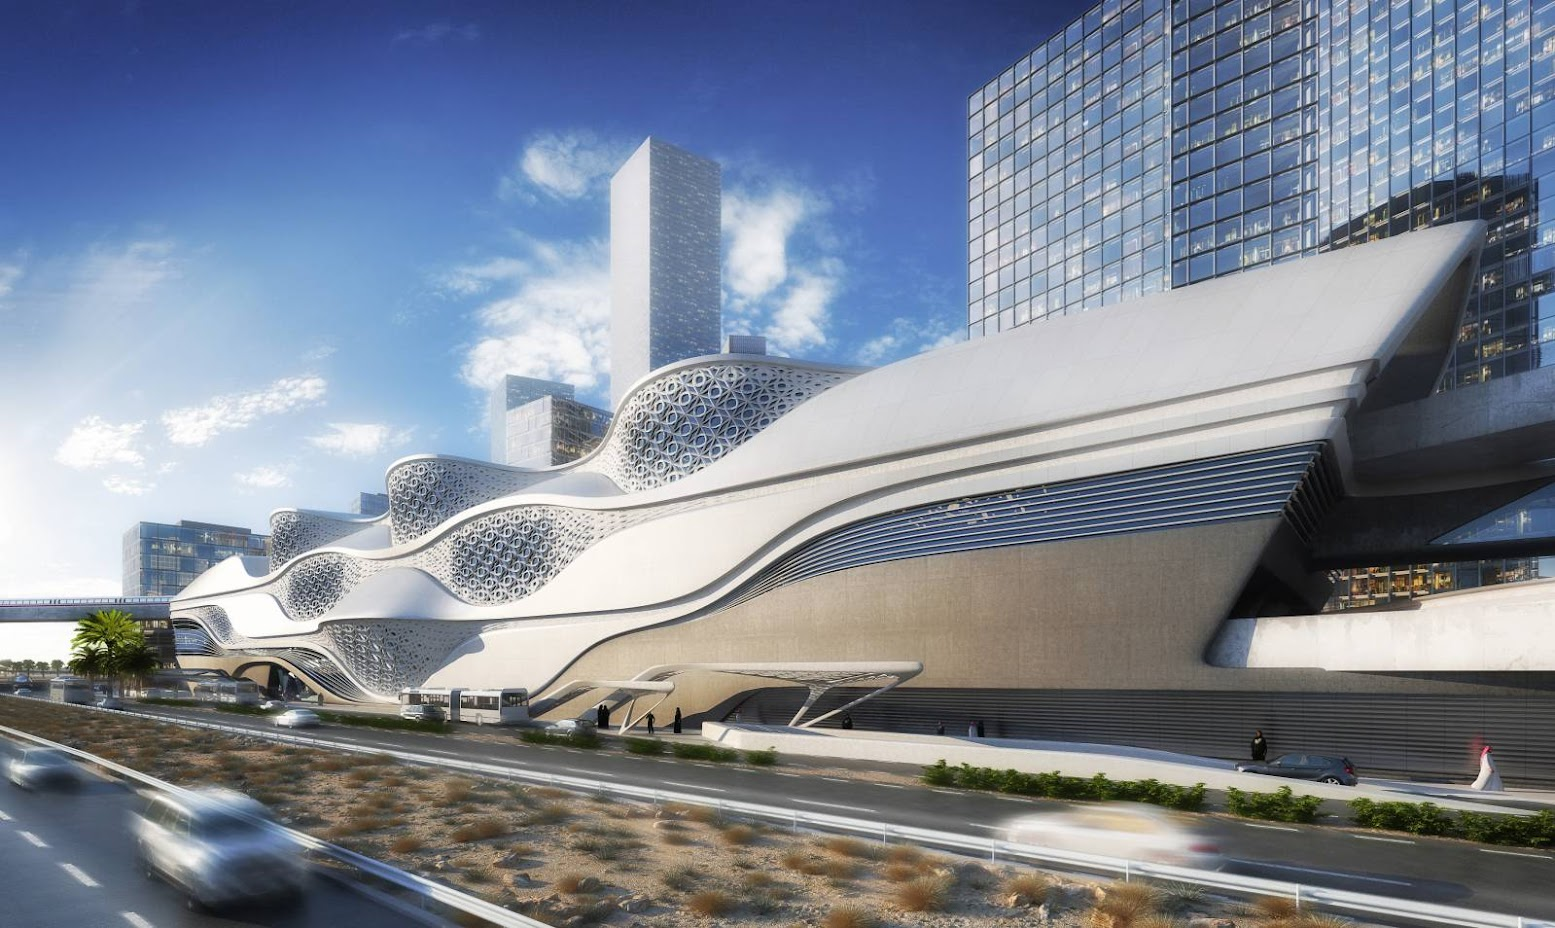 Riyad Arabia Saudita: [KING ABDULLAH FINANCIAL DISTRICT METRO STATION BY ZAHA HADID]